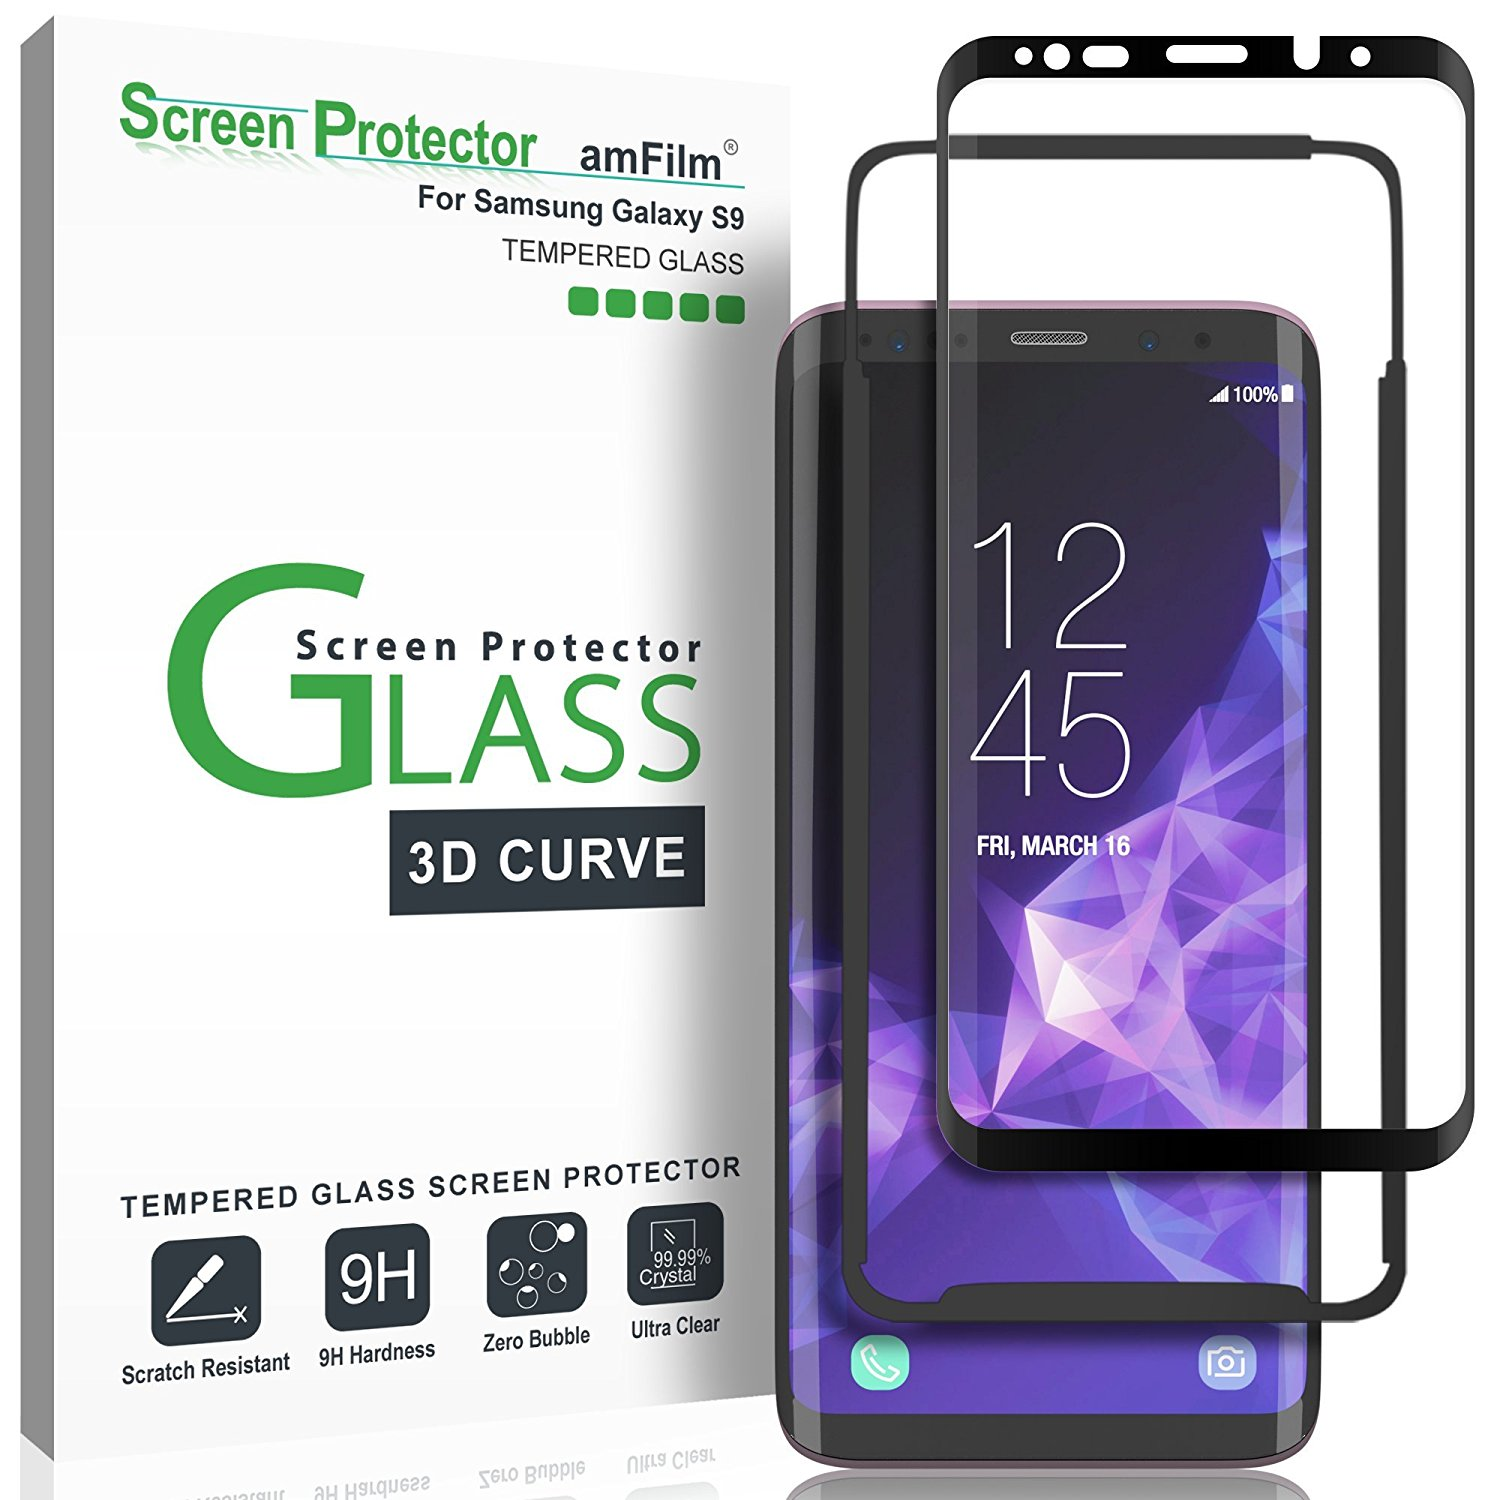 Galaxy S9 Screen Protector Glass - amFilm Full Cover (3D Curved) Tempered Glass Screen Protector with Dot Matrix for Samsung Galaxy S9 (1 Pack, Black)